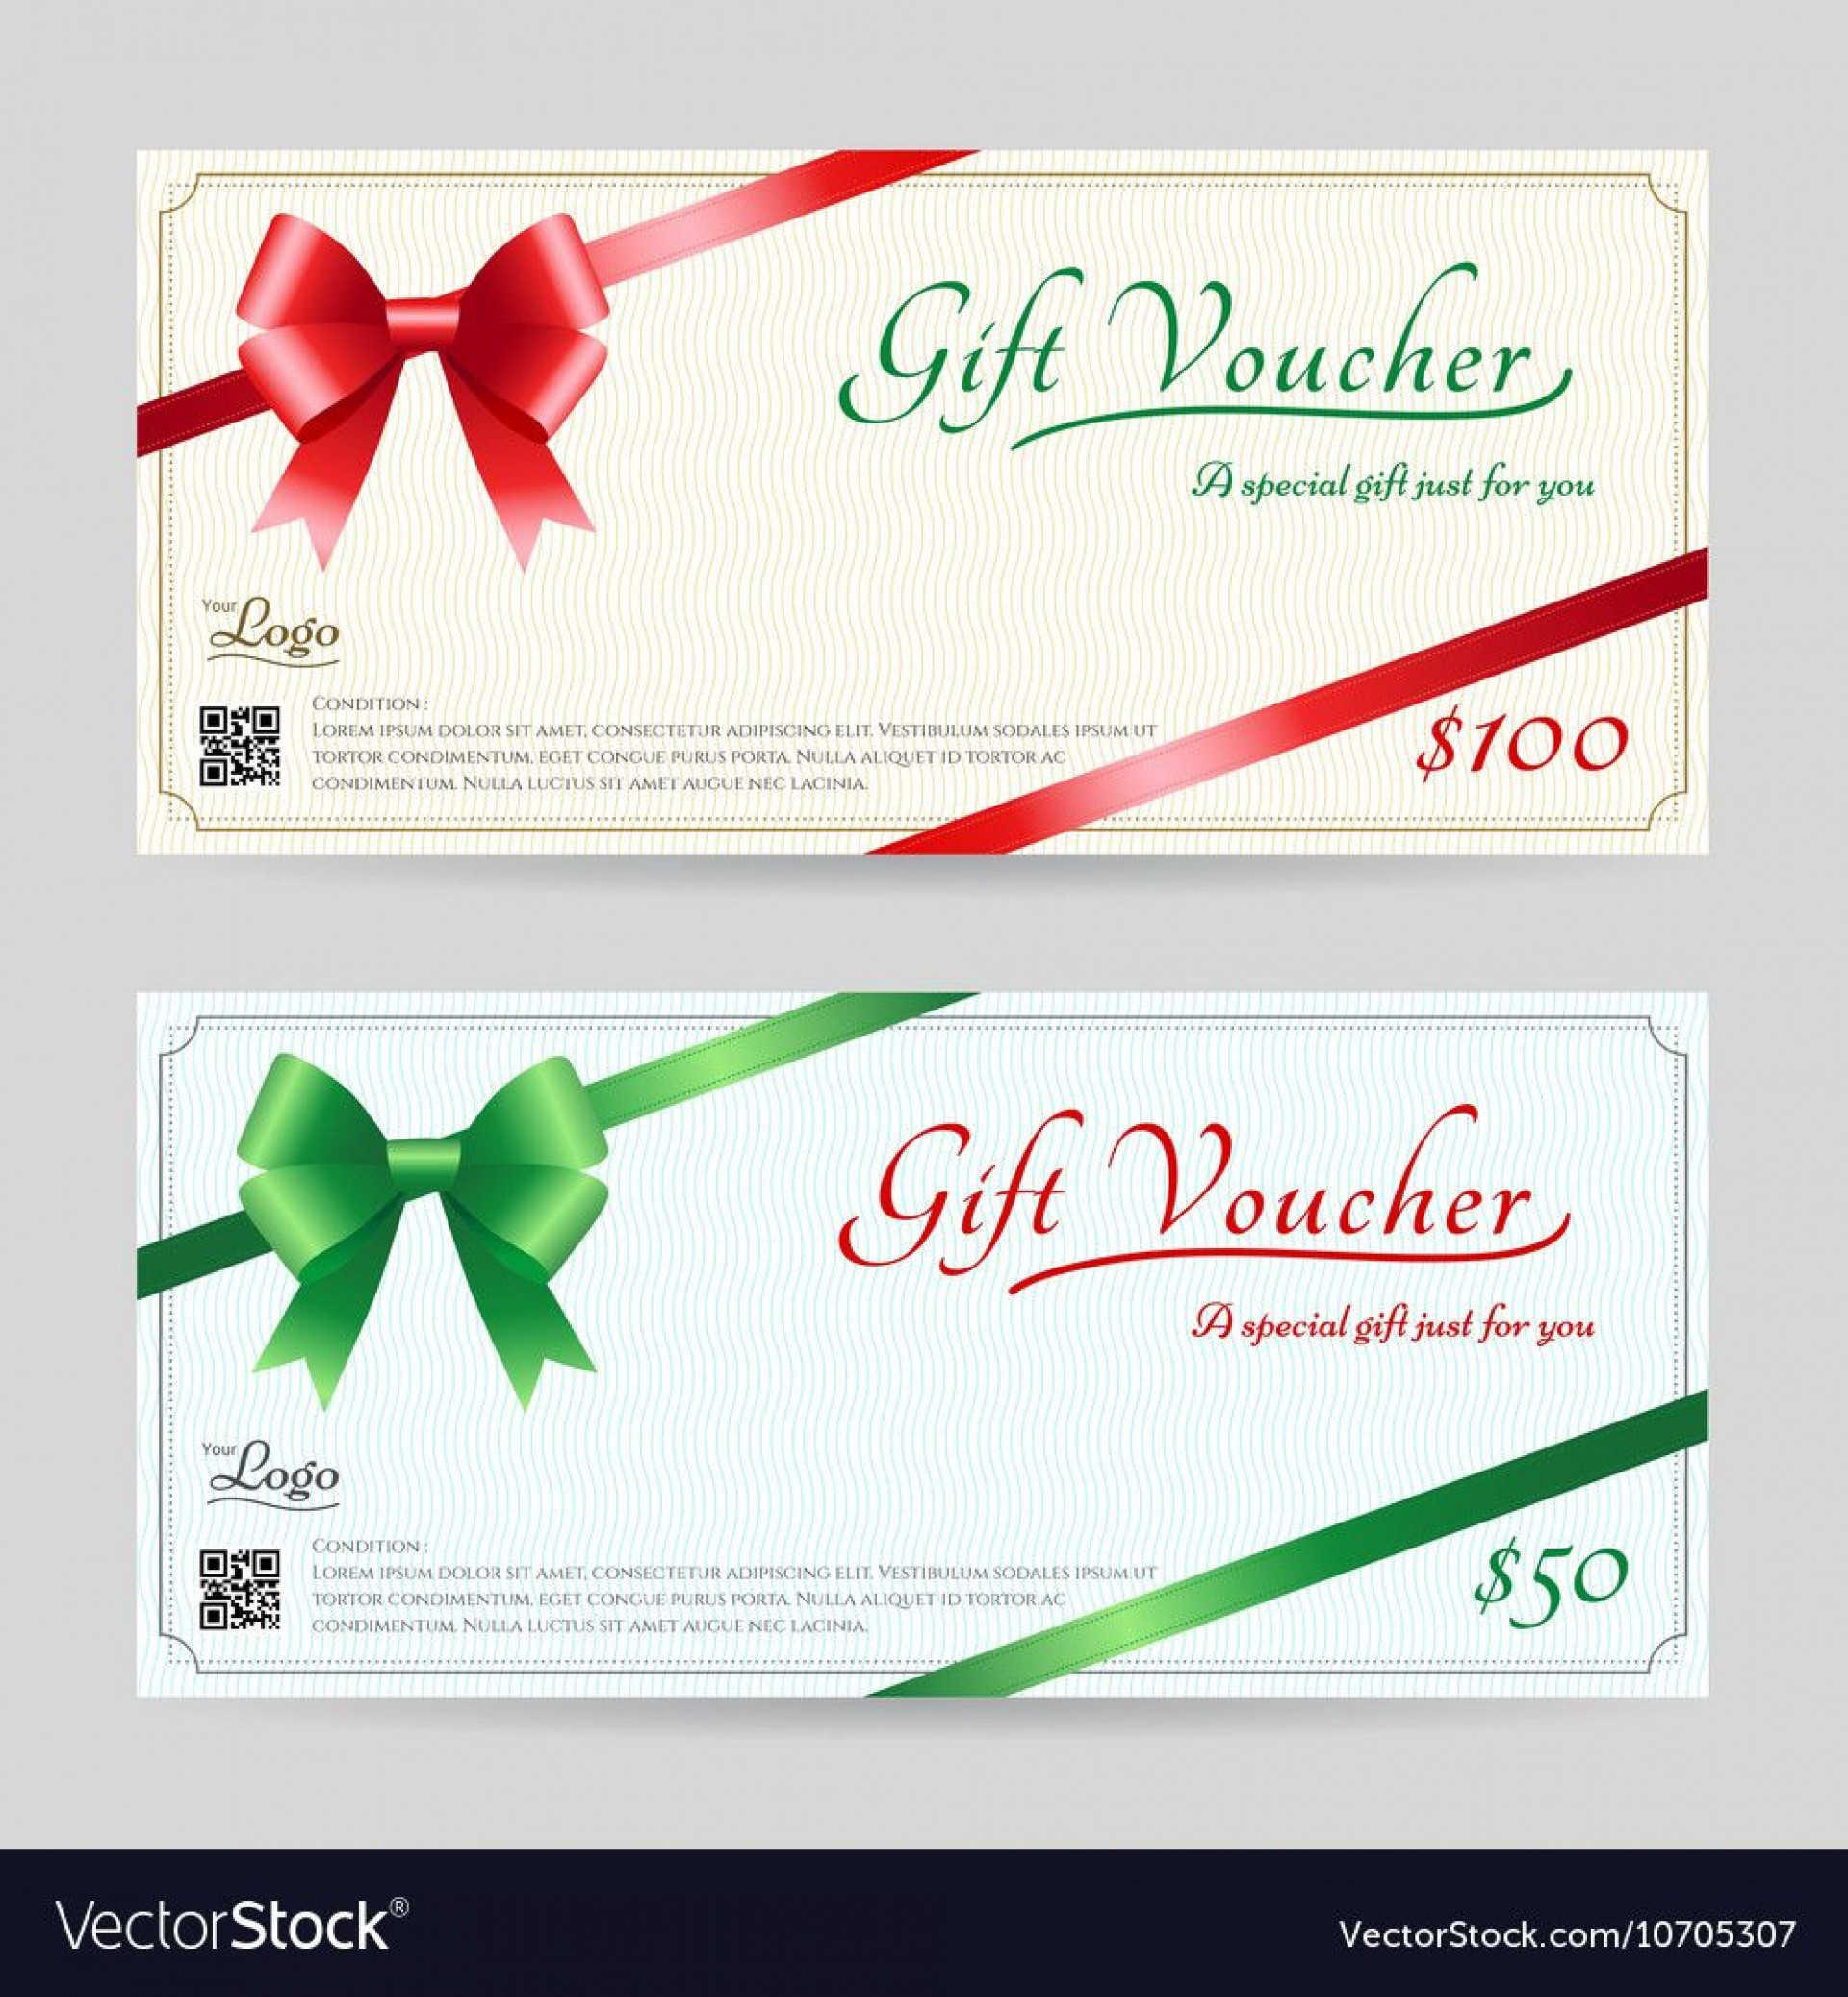 005 Fascinating Template For Christma Gift Certificate Free Sample  Voucher Uk Editable Download Microsoft Word1920